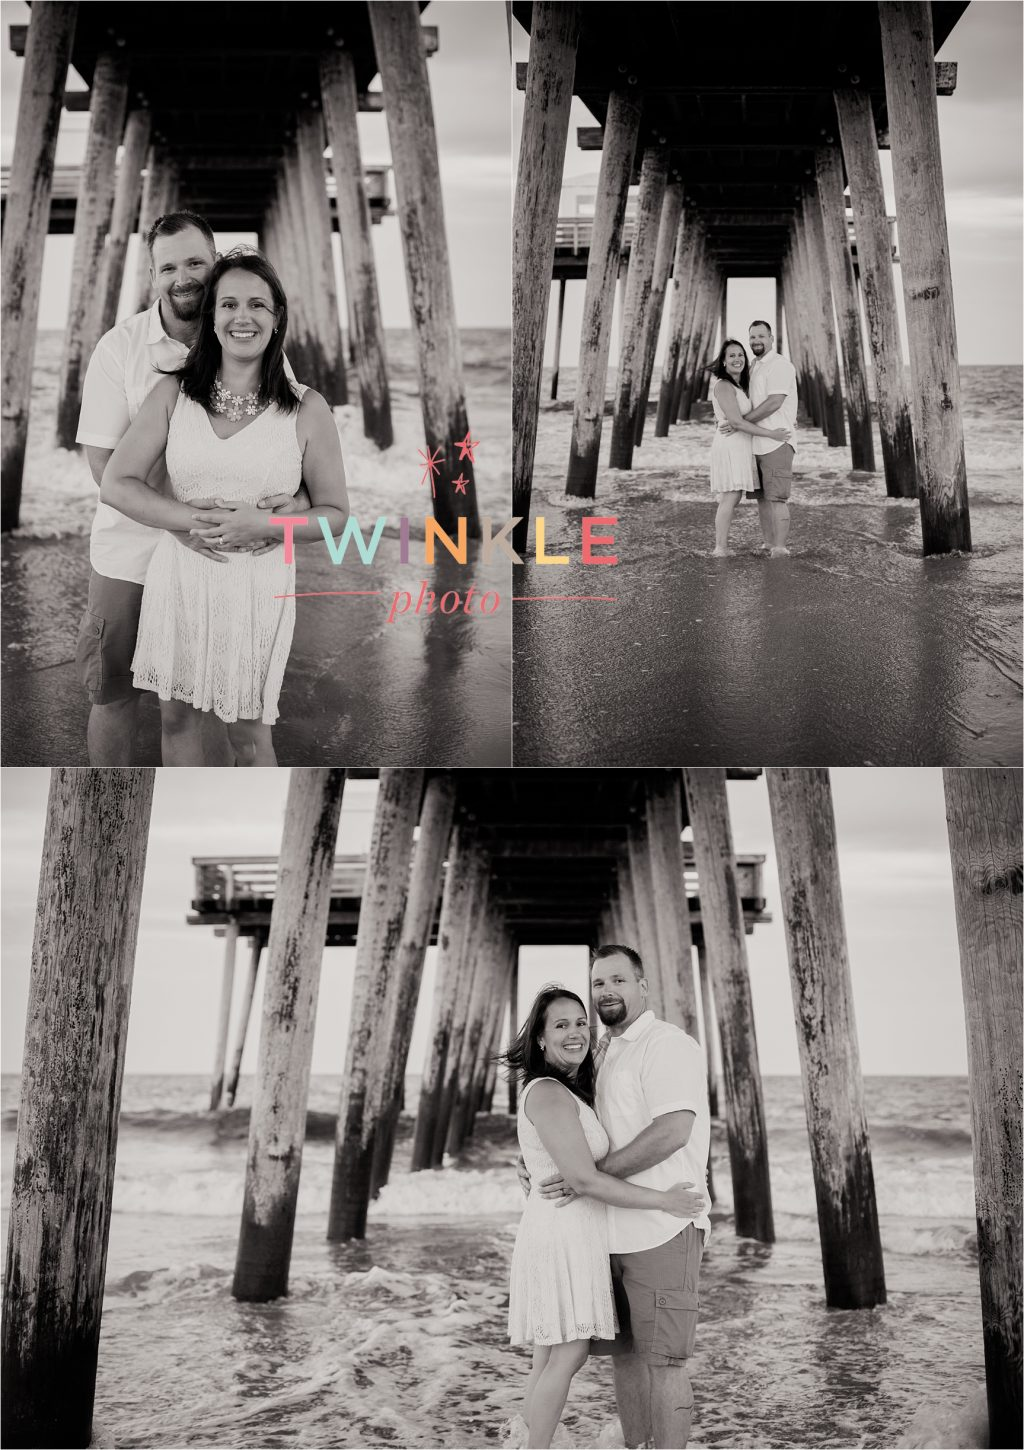 OCNJ Ocean City NJ New Jersey Beach Family Photography Photographer Twinkle Photo-23